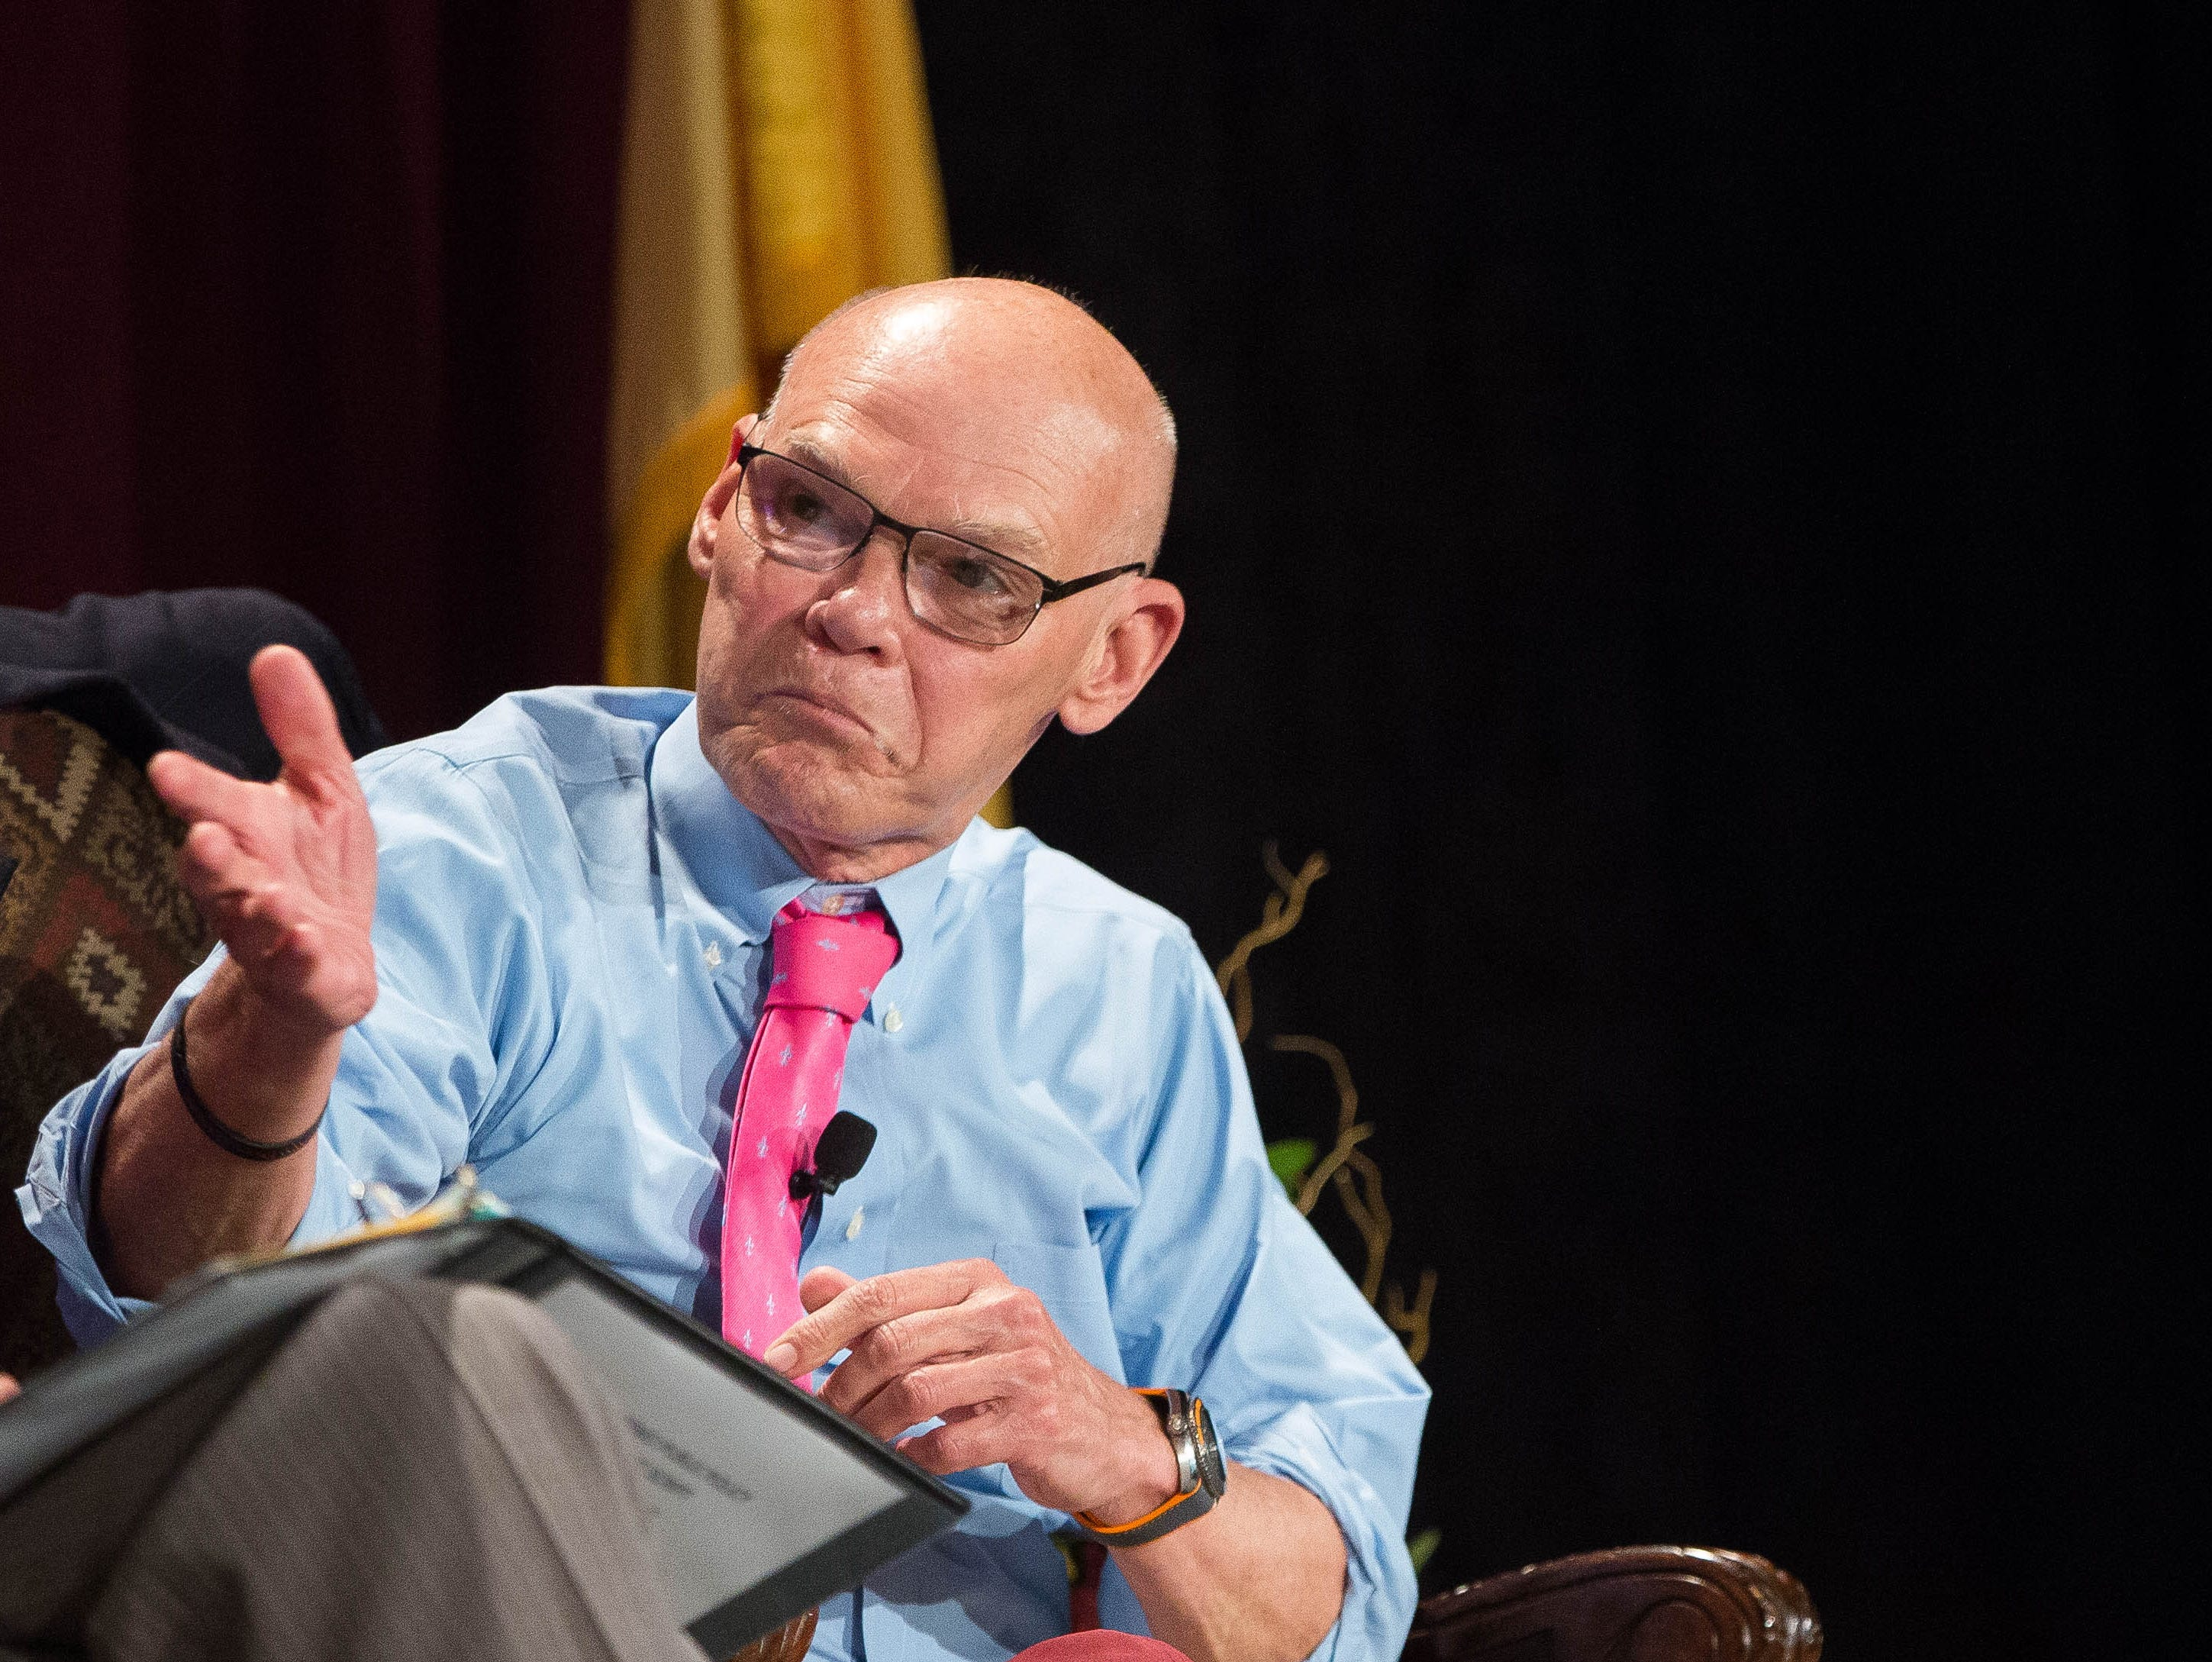 James Carville, right, political consultant, discusses the 2018 midterm elections and the Trump Presidency during a panel discussion at the 2018 Domenici Public Policy Conference, Thursday, September 13, 2018.